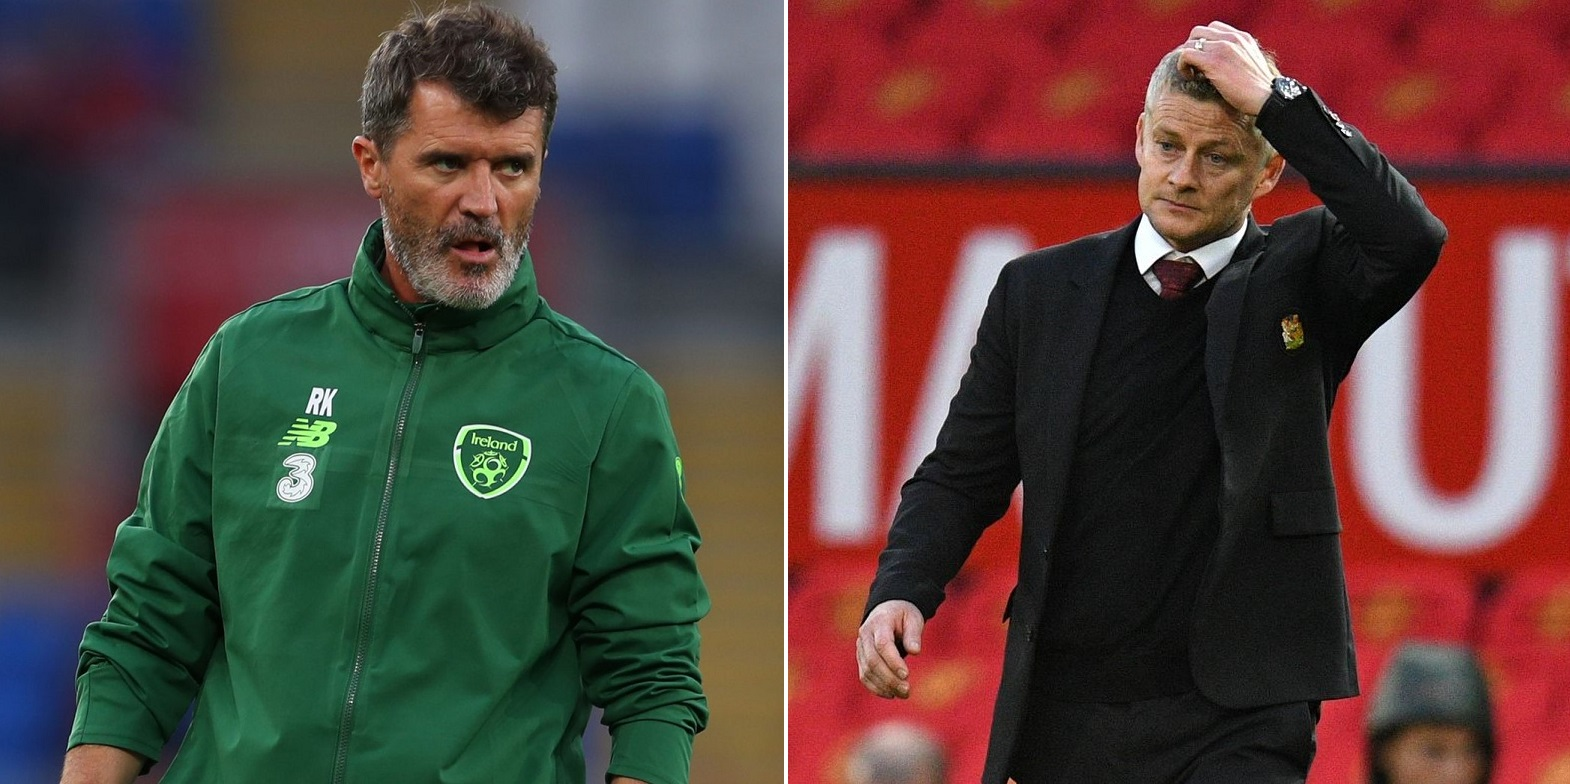 They will cost Ole his job: Roy Keane lambasts Man Utd players for 6-1 humiliation against Spurs - THE SPORTS ROOM